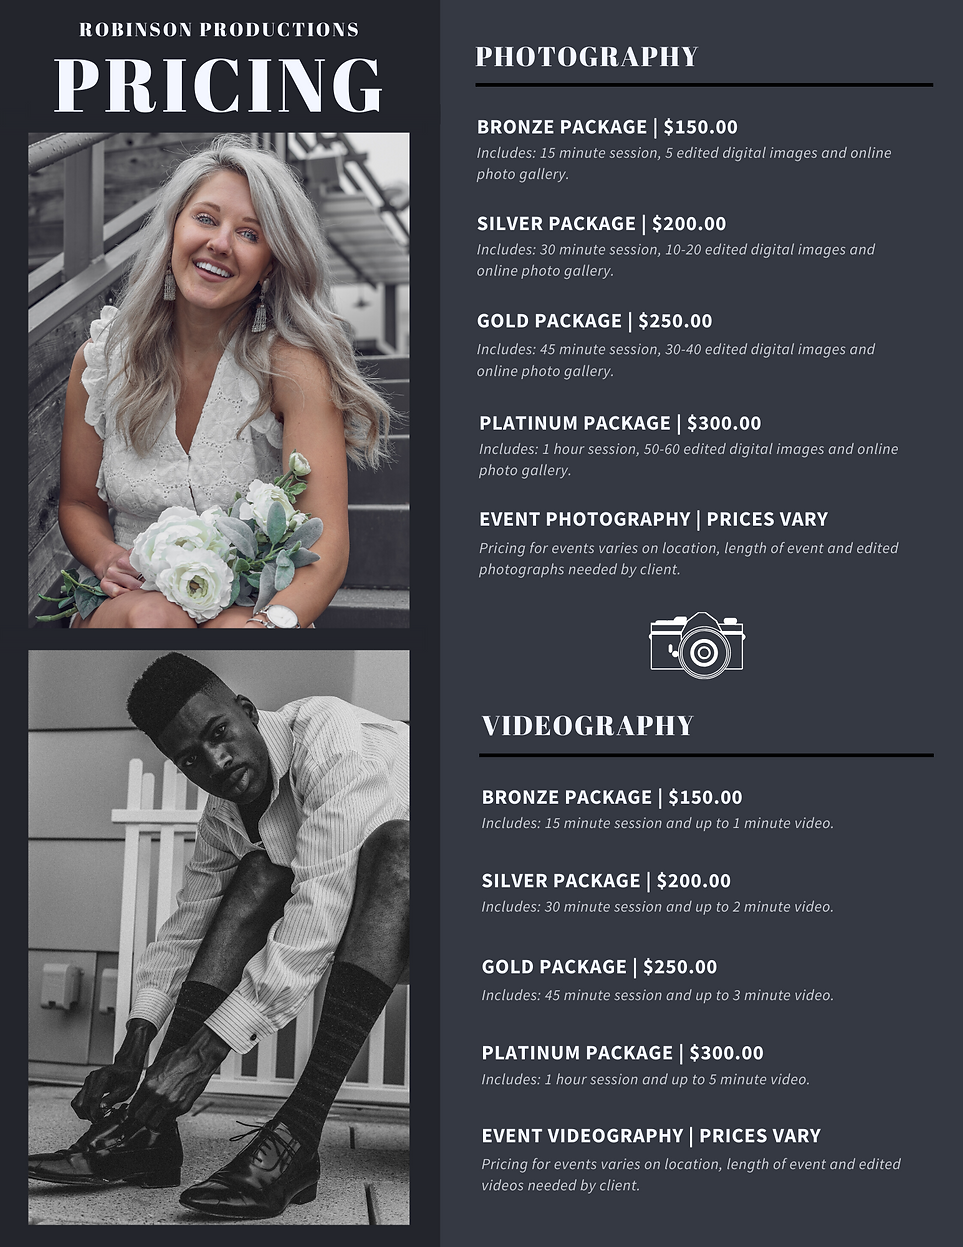 Pricing for Photography and Videography Services